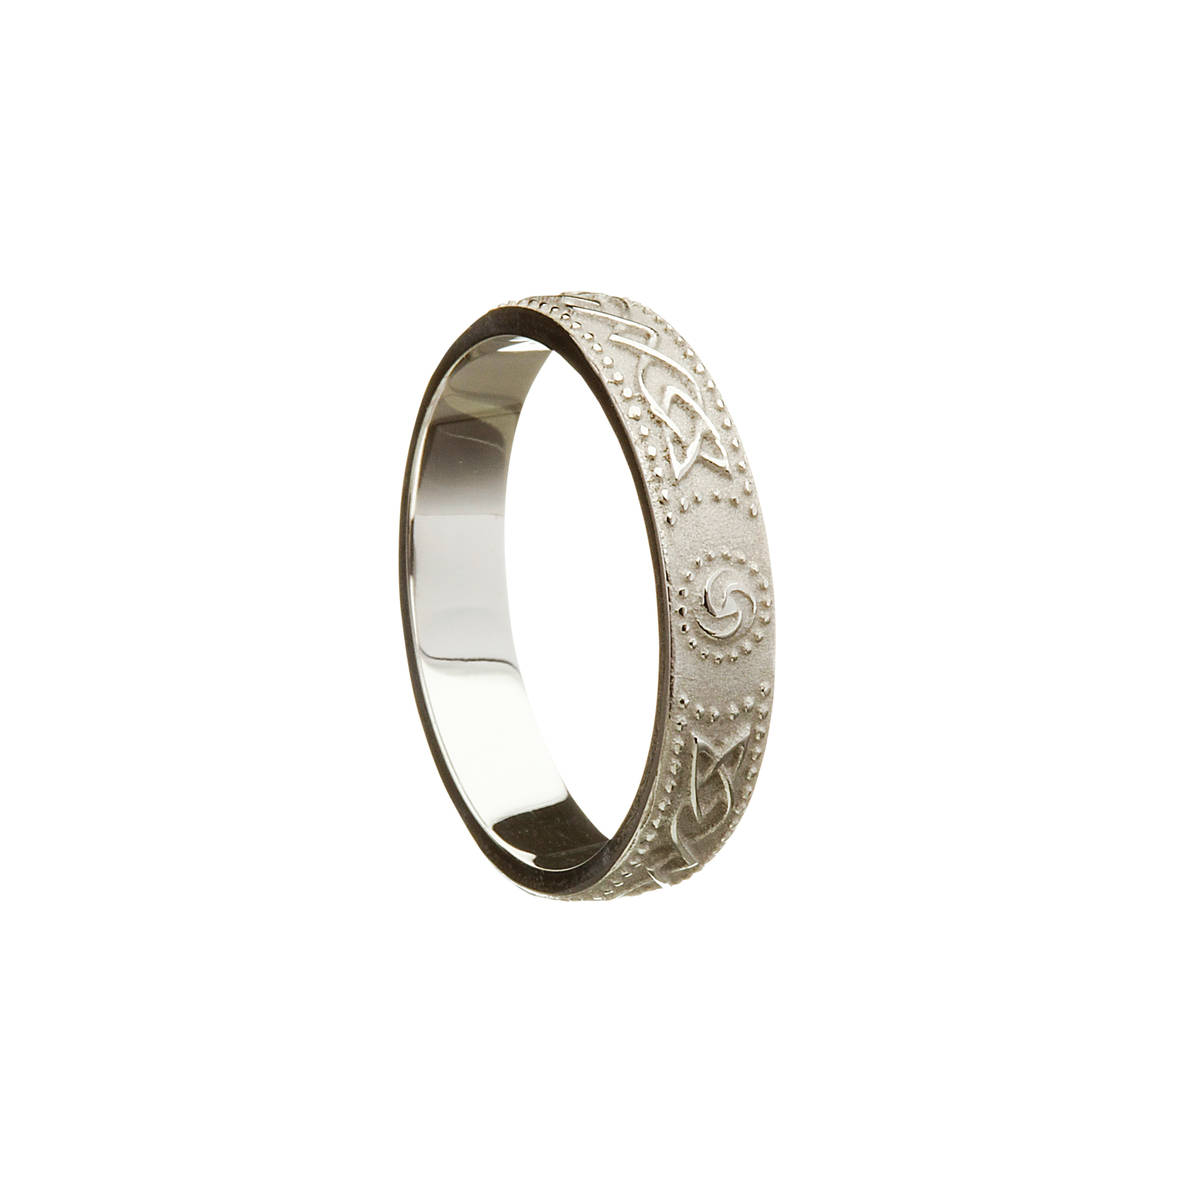 Platinum white man's Celtic warrior shield 4.9 mm wide approx. ring.Very practical everyday use ring with interesting detail.